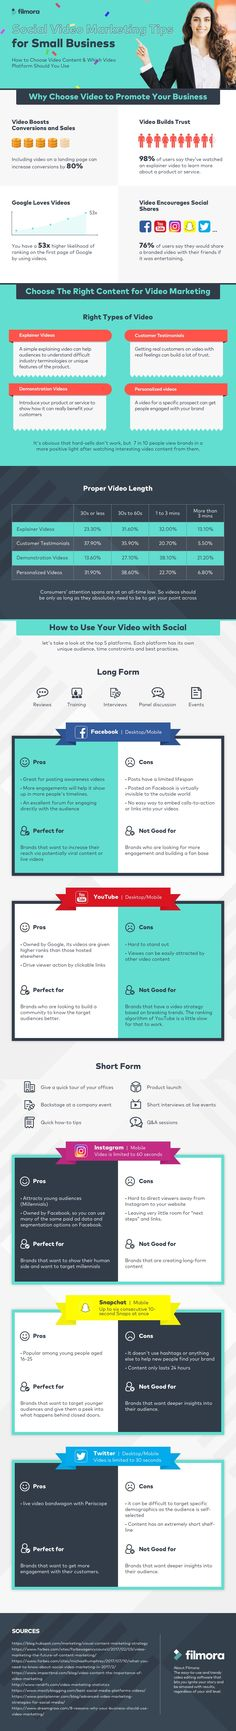 Social Video Marketing Tips for Small Business [Infographic] | Social Media Today